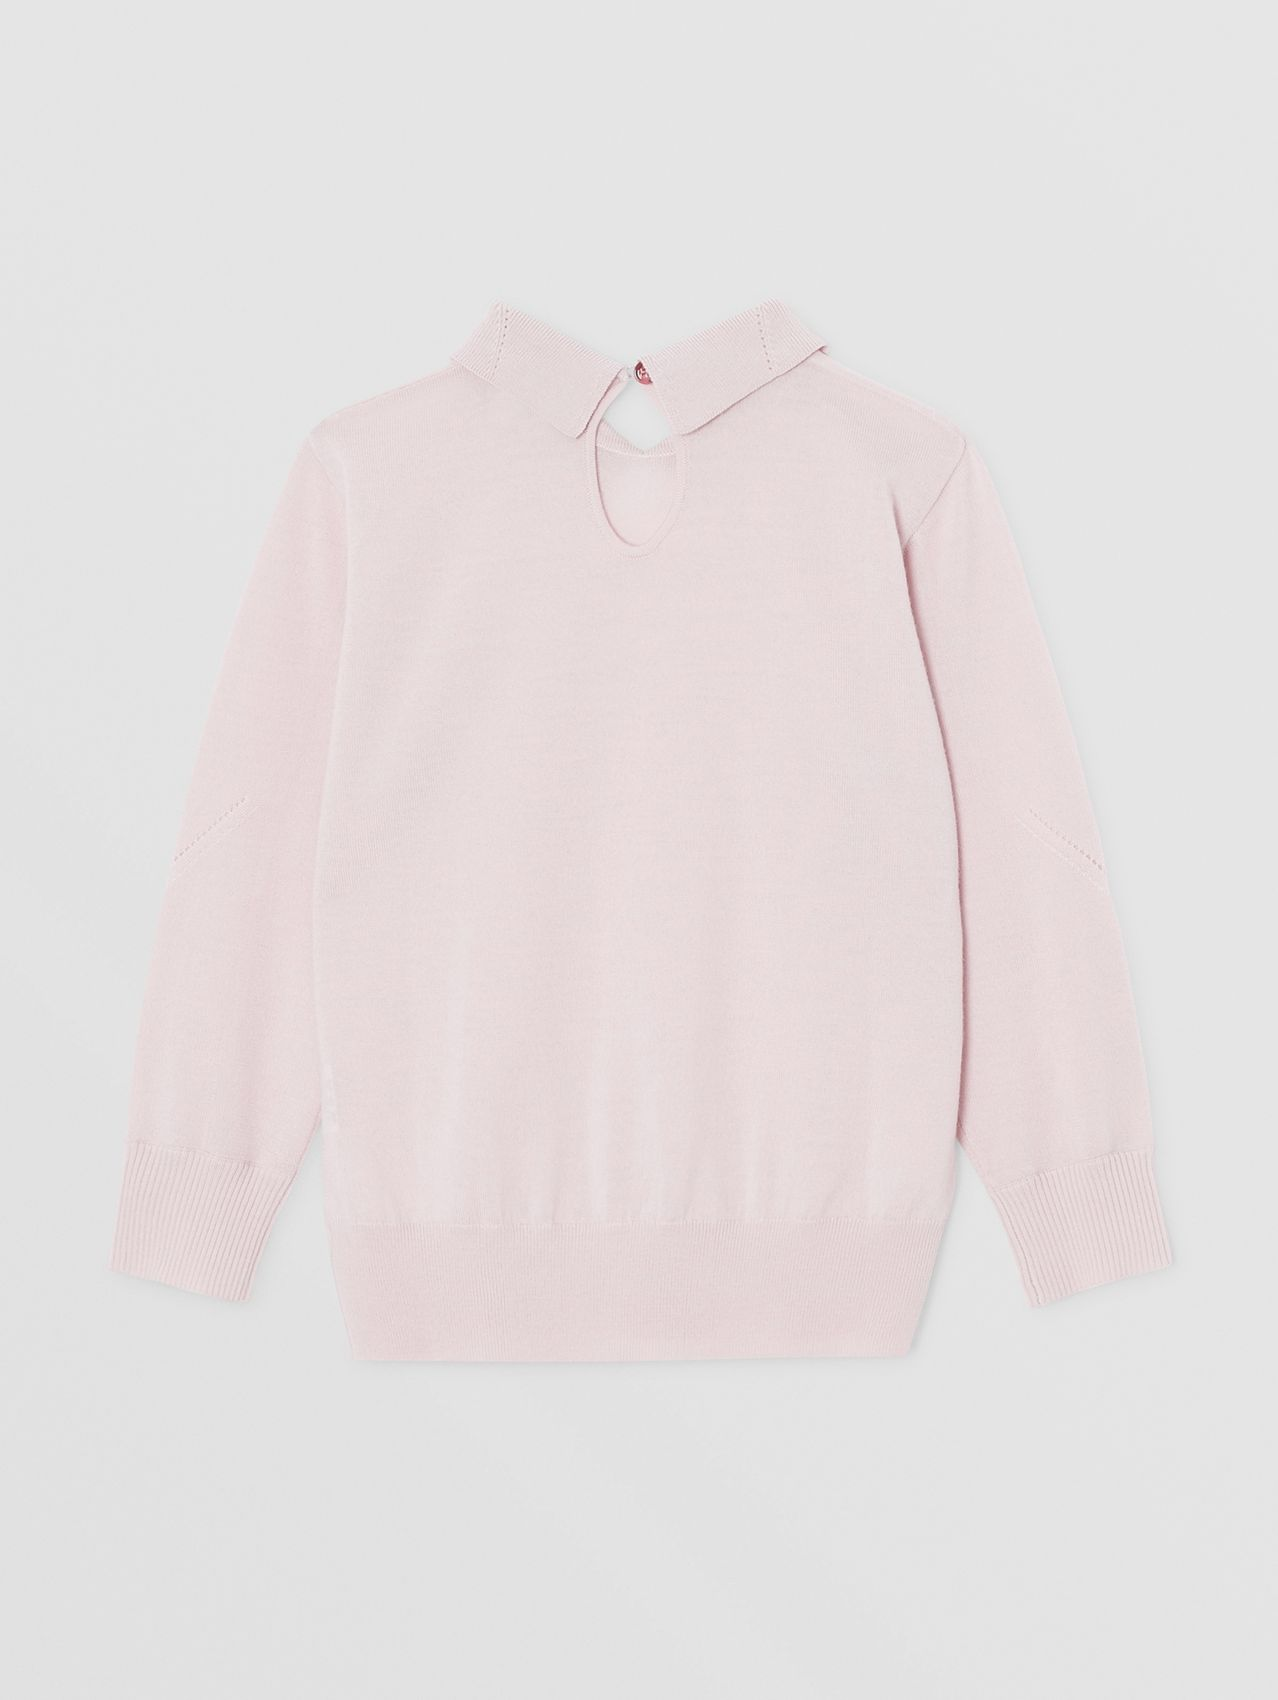 Crystal Monogram Motif Merino Wool Sweater in Light Pink